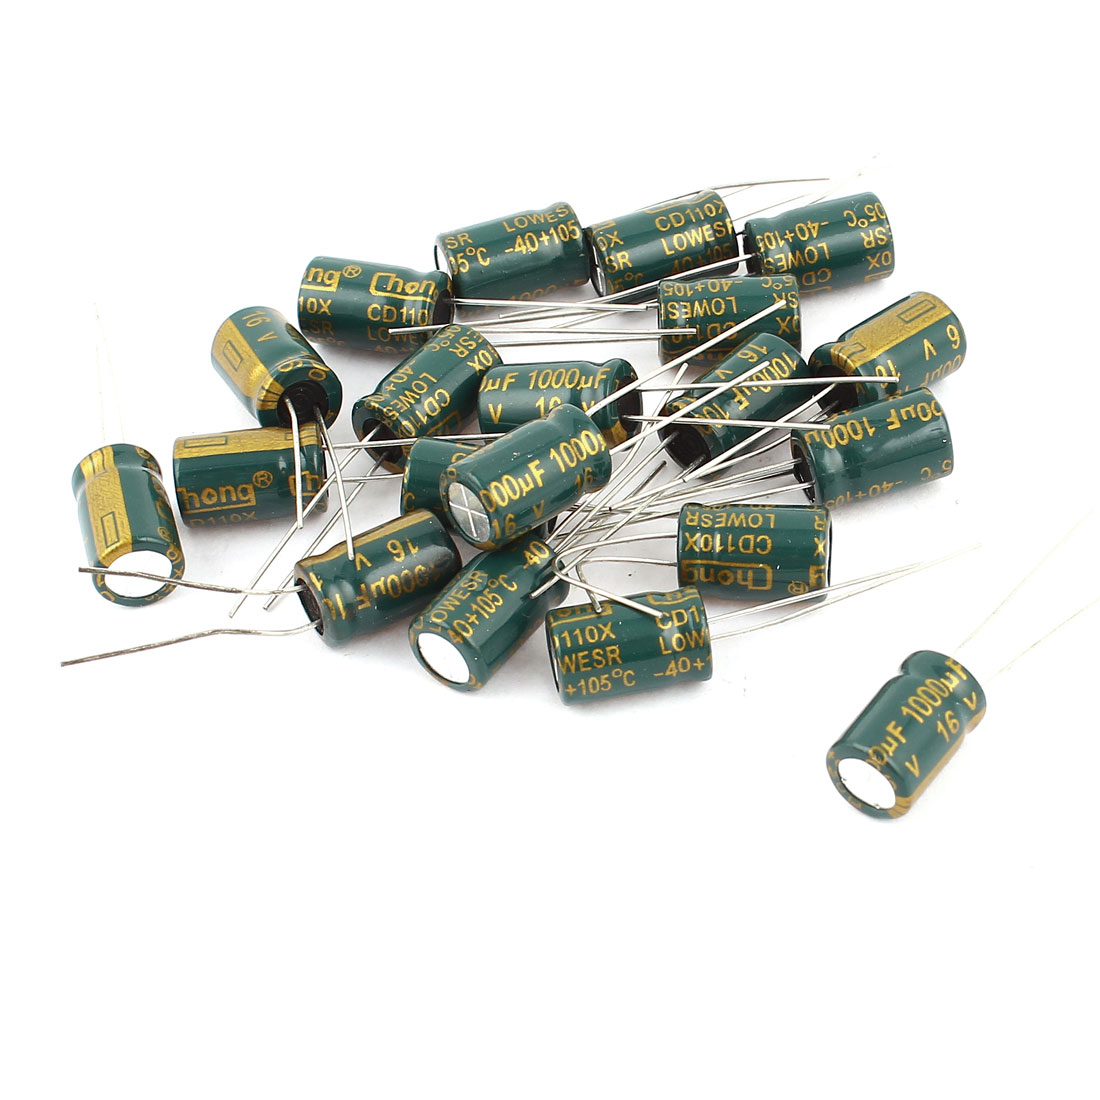 20PCS 16V 1000uf 8x13mm Through Hole Radial Lead Aluminium Electrolytic Capacitor